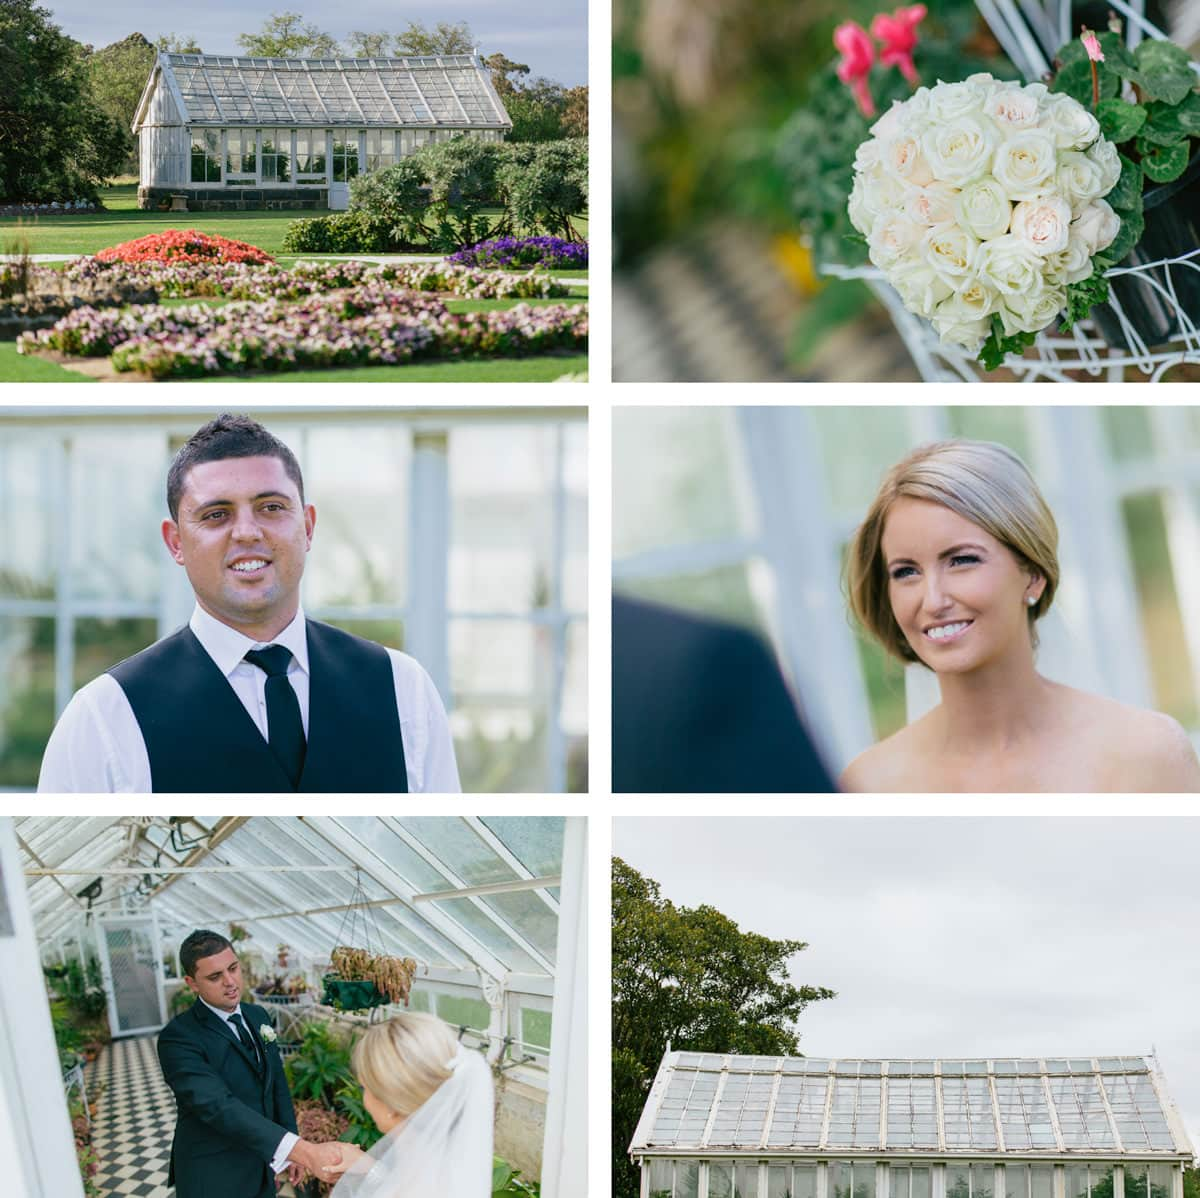 the glasshouse at werribee mansion park is a perfect backdrop for creative wedding photography at werribee mansion - captured by melbourne wedding photographer